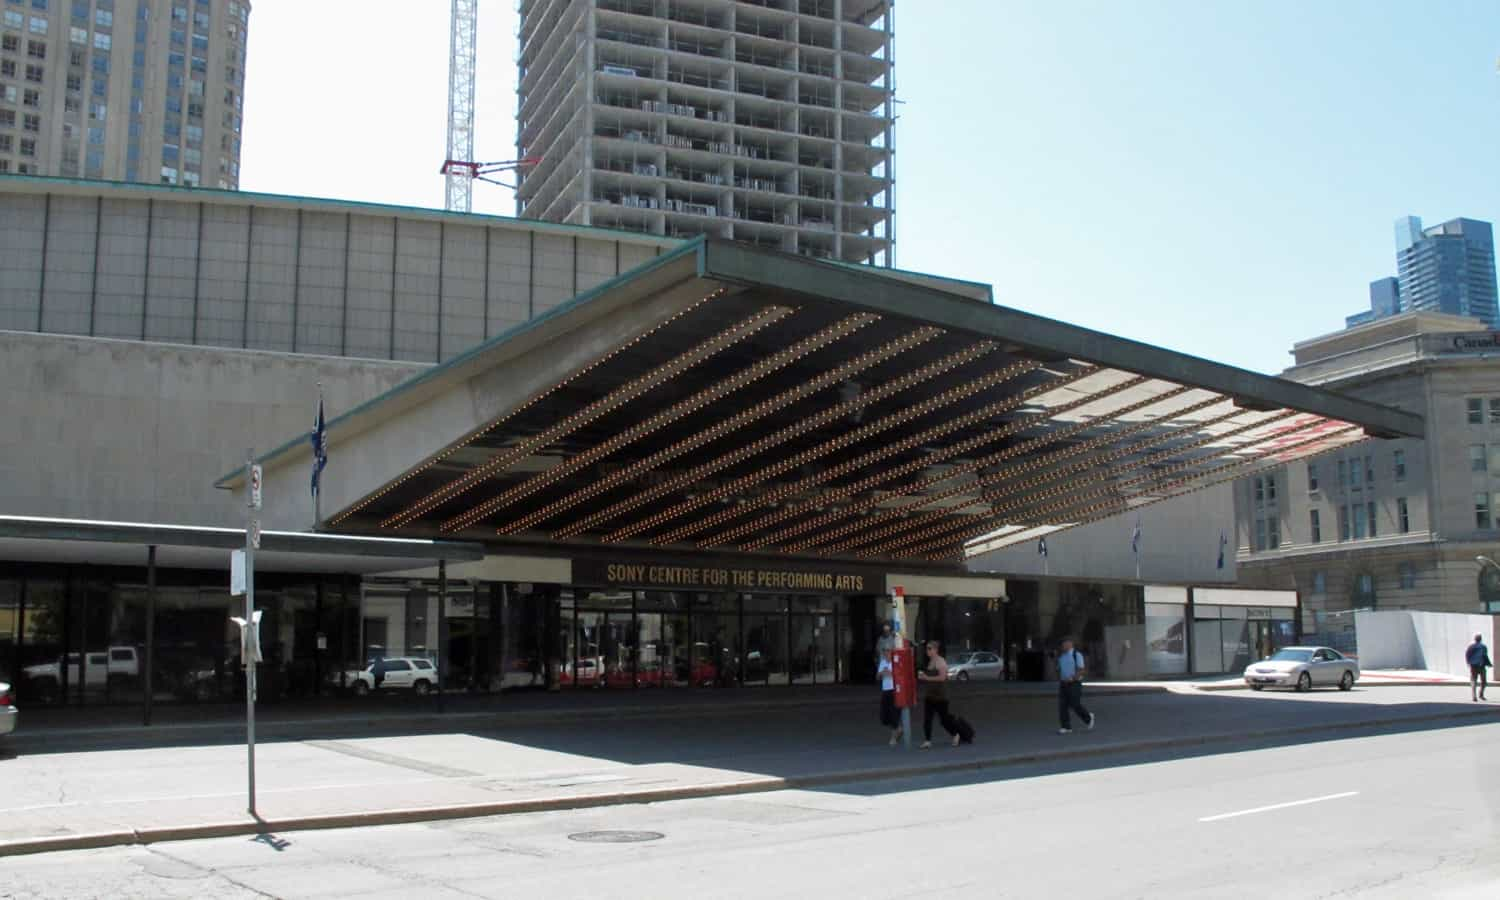 Main entrance under the cantilevered canopy